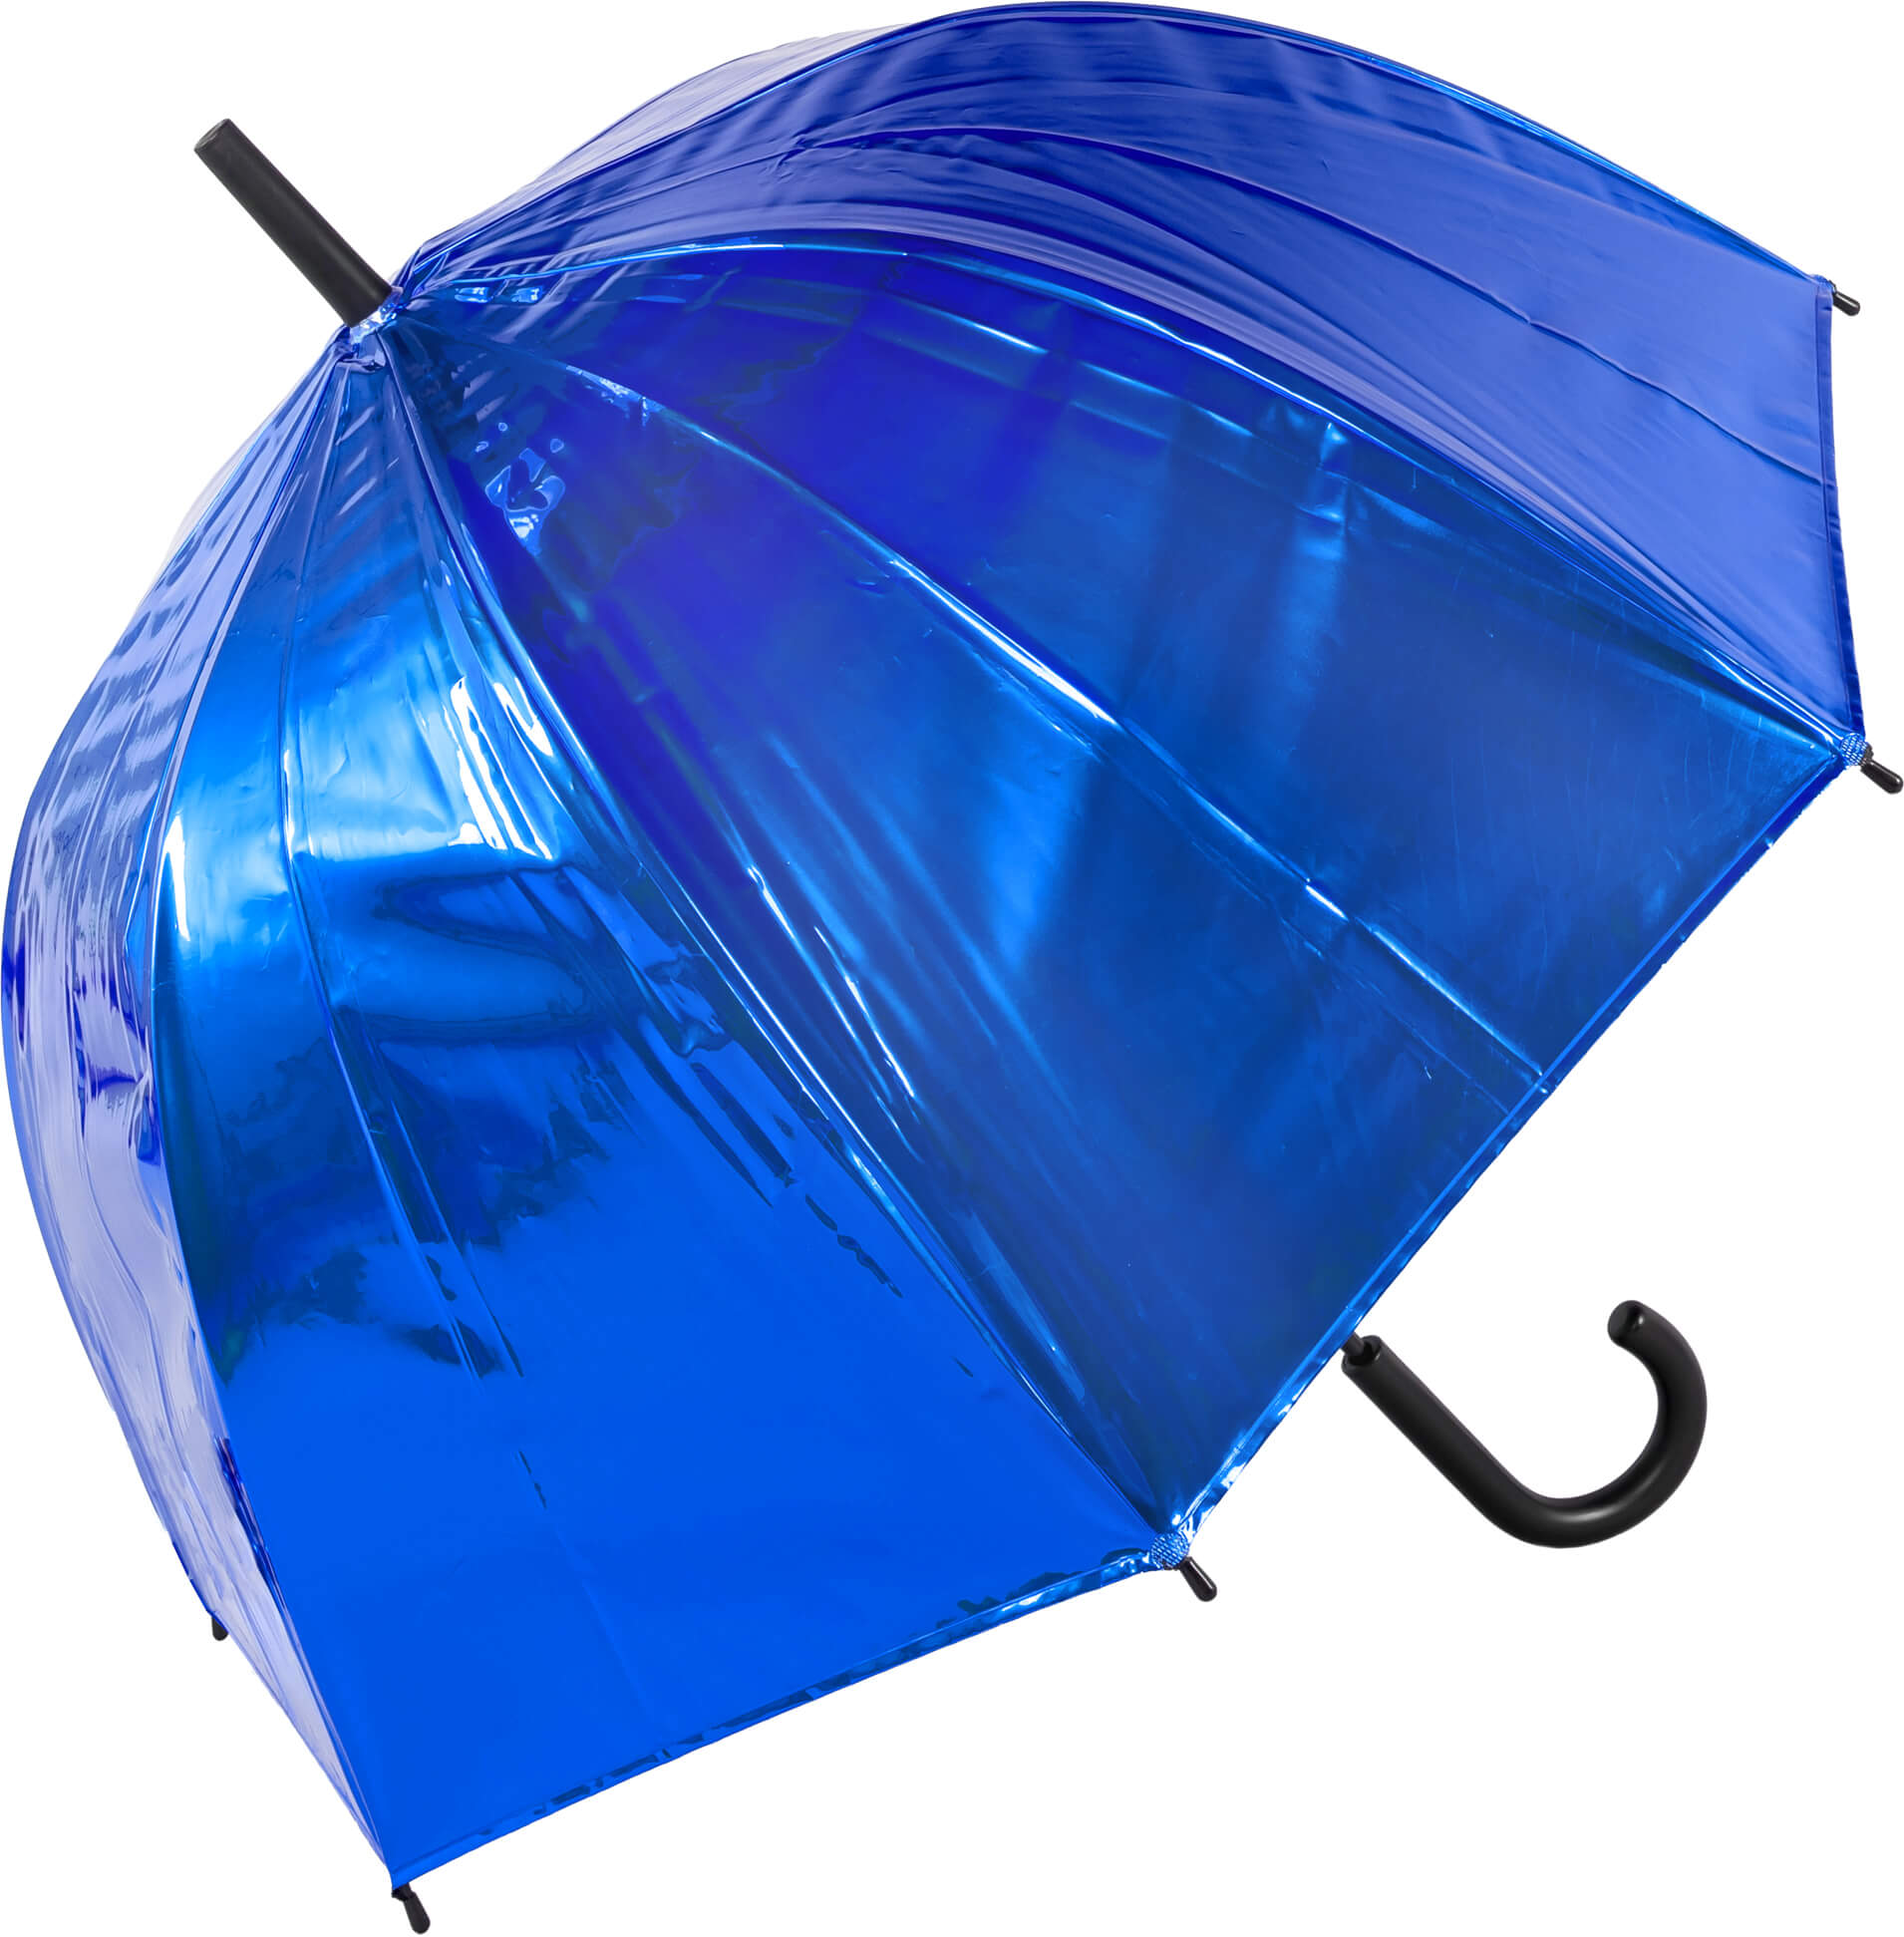 Click to view Auto Open Metallic Blue Bubble Dome Umbrella (18019)